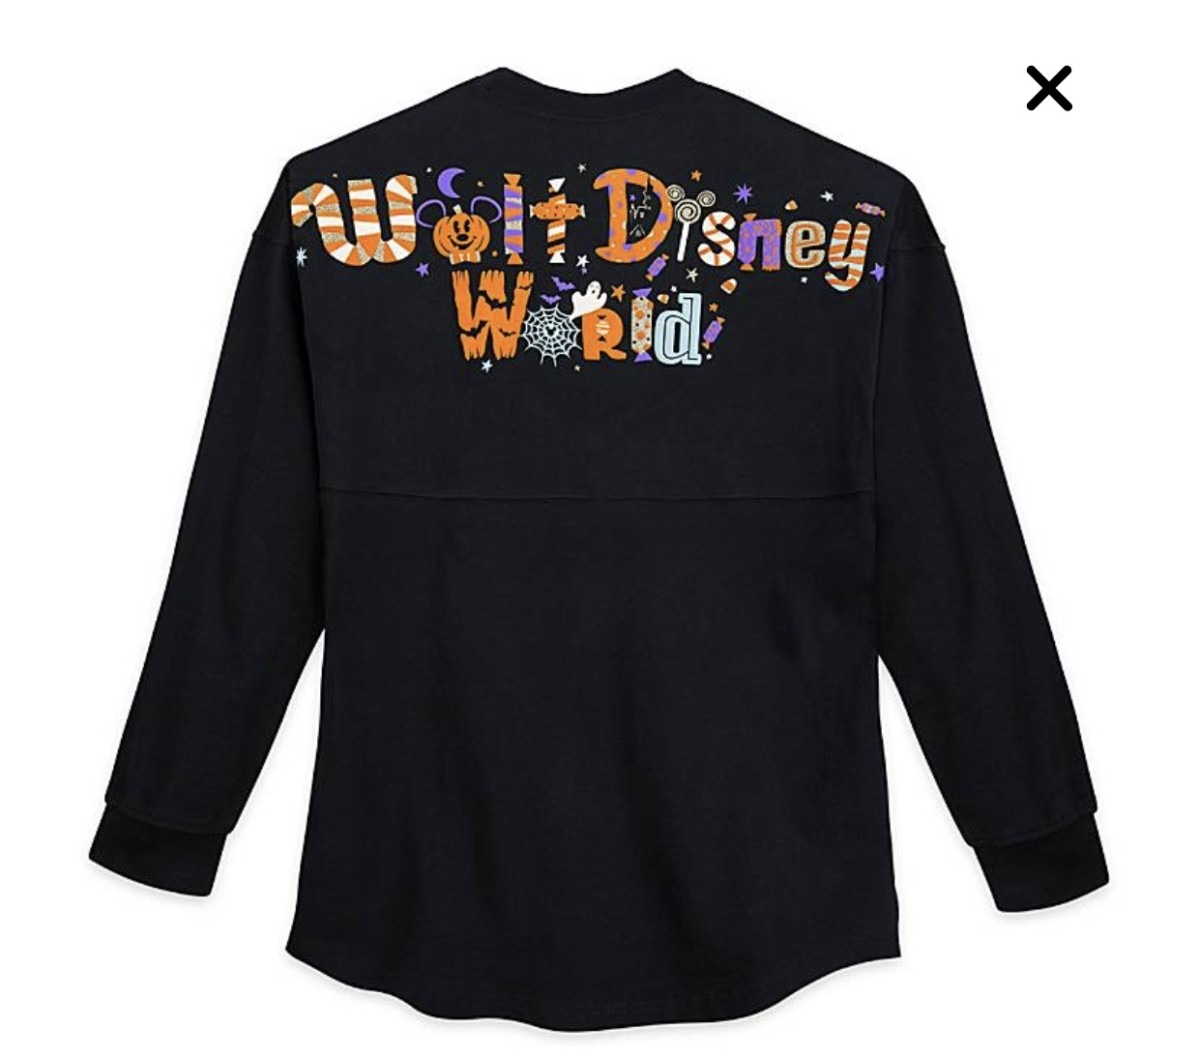 NEW Disney Parks Halloween Merch on shopDisney! 4